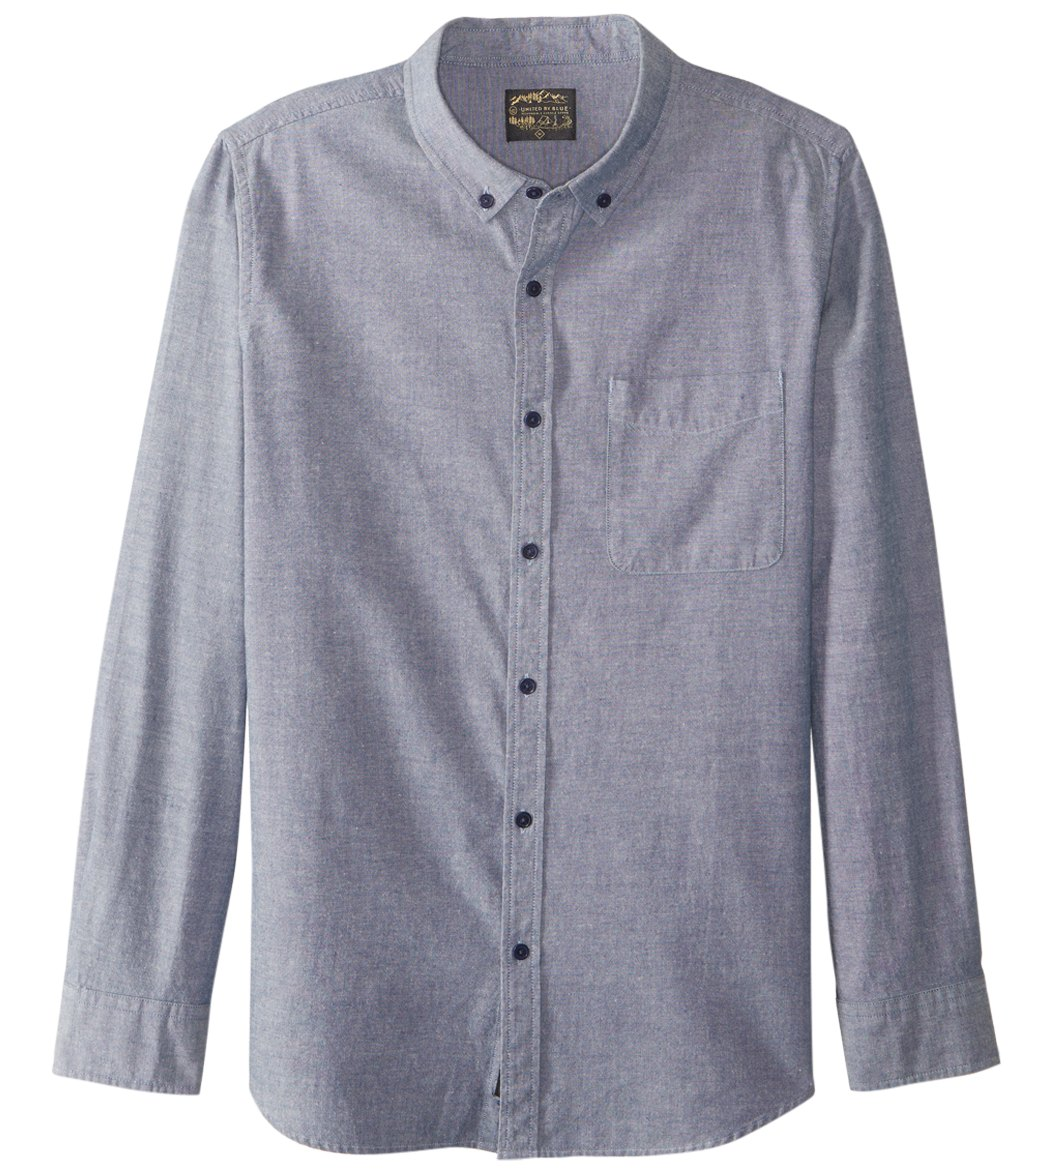 United By Blue Men's Bryce Chambray Long Sleeve Shirt - Blue Small Cotton - Swimoutlet.com